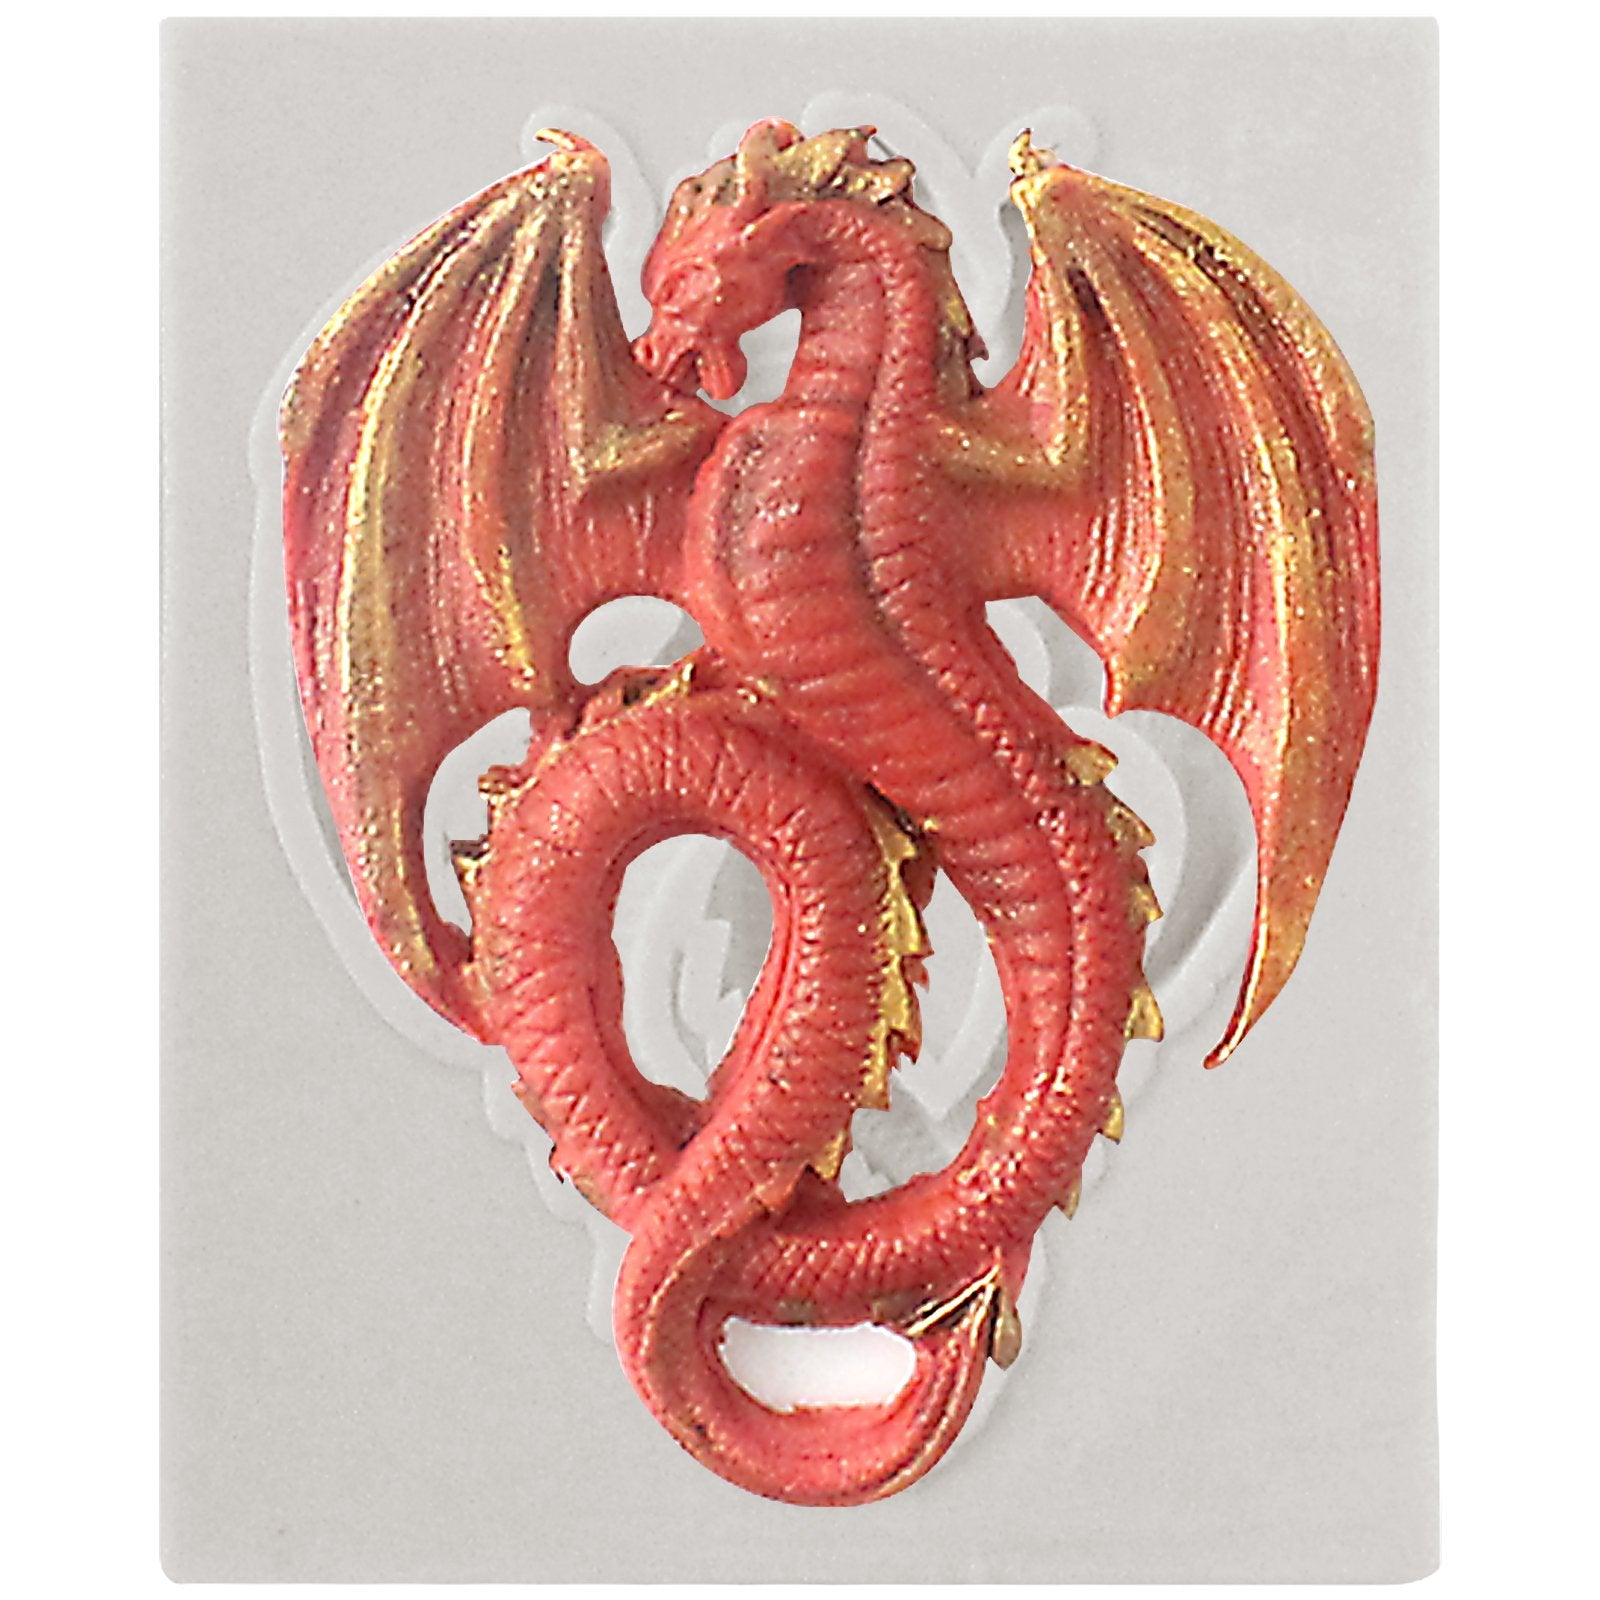 GOT Inspire Fire Dragon Silicone Mold